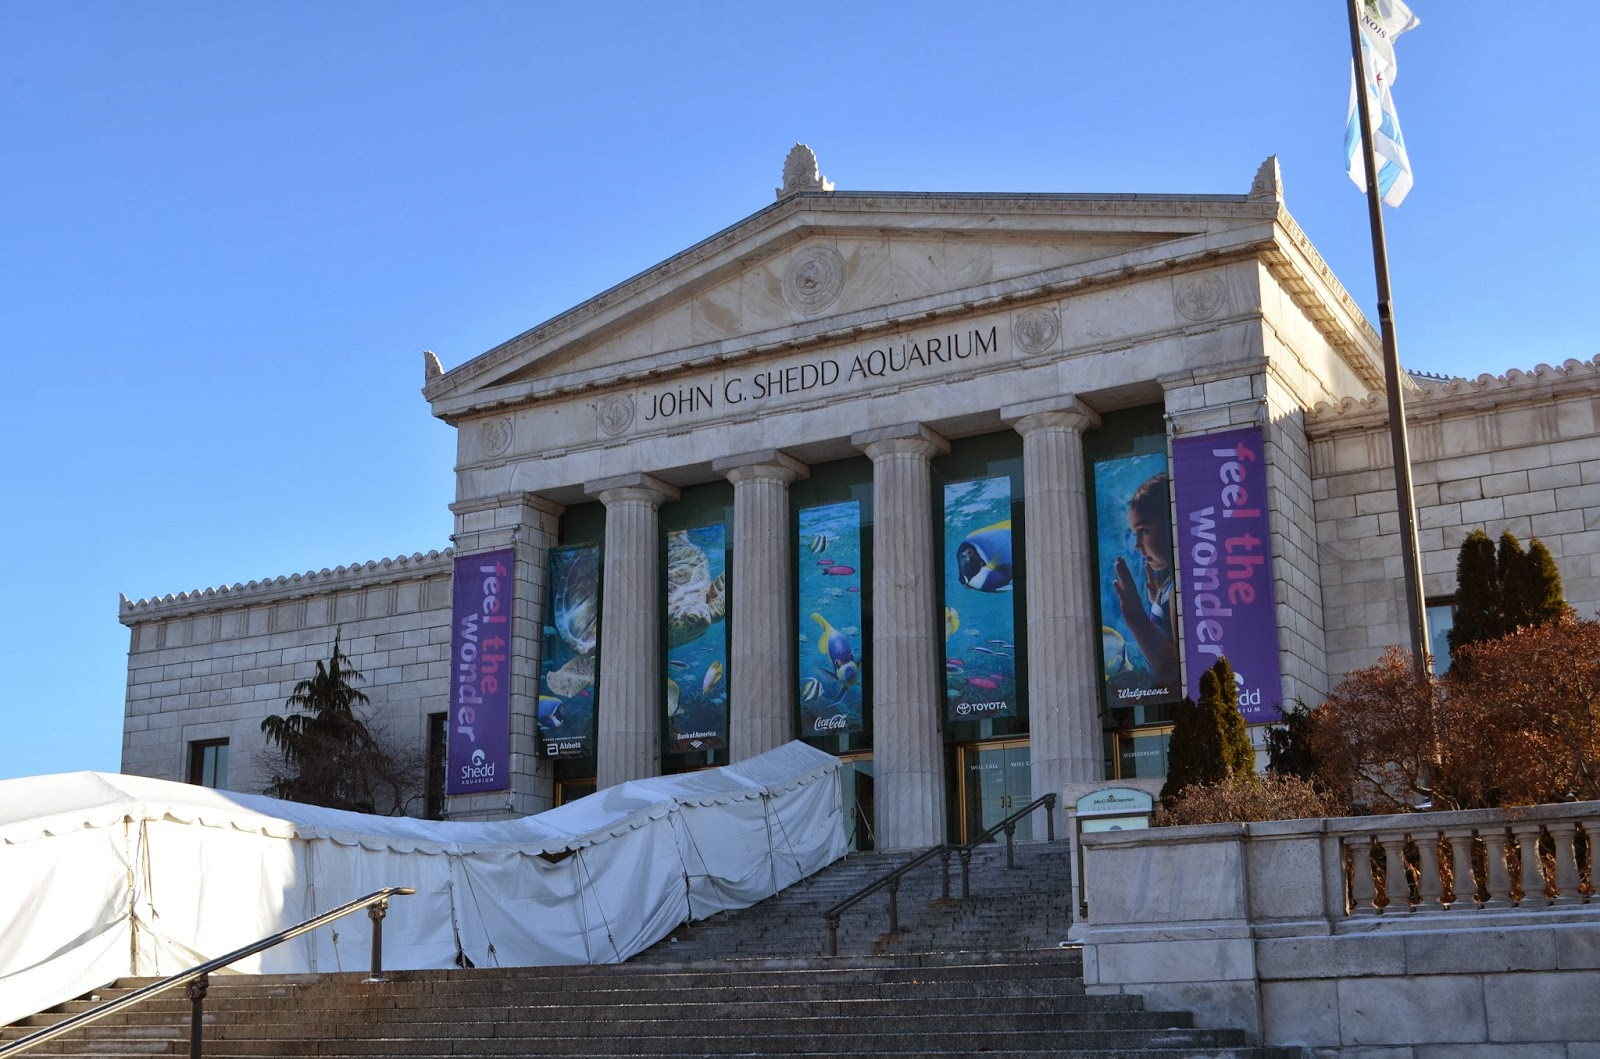 The beautiful Shedd Aquarium in Chicago